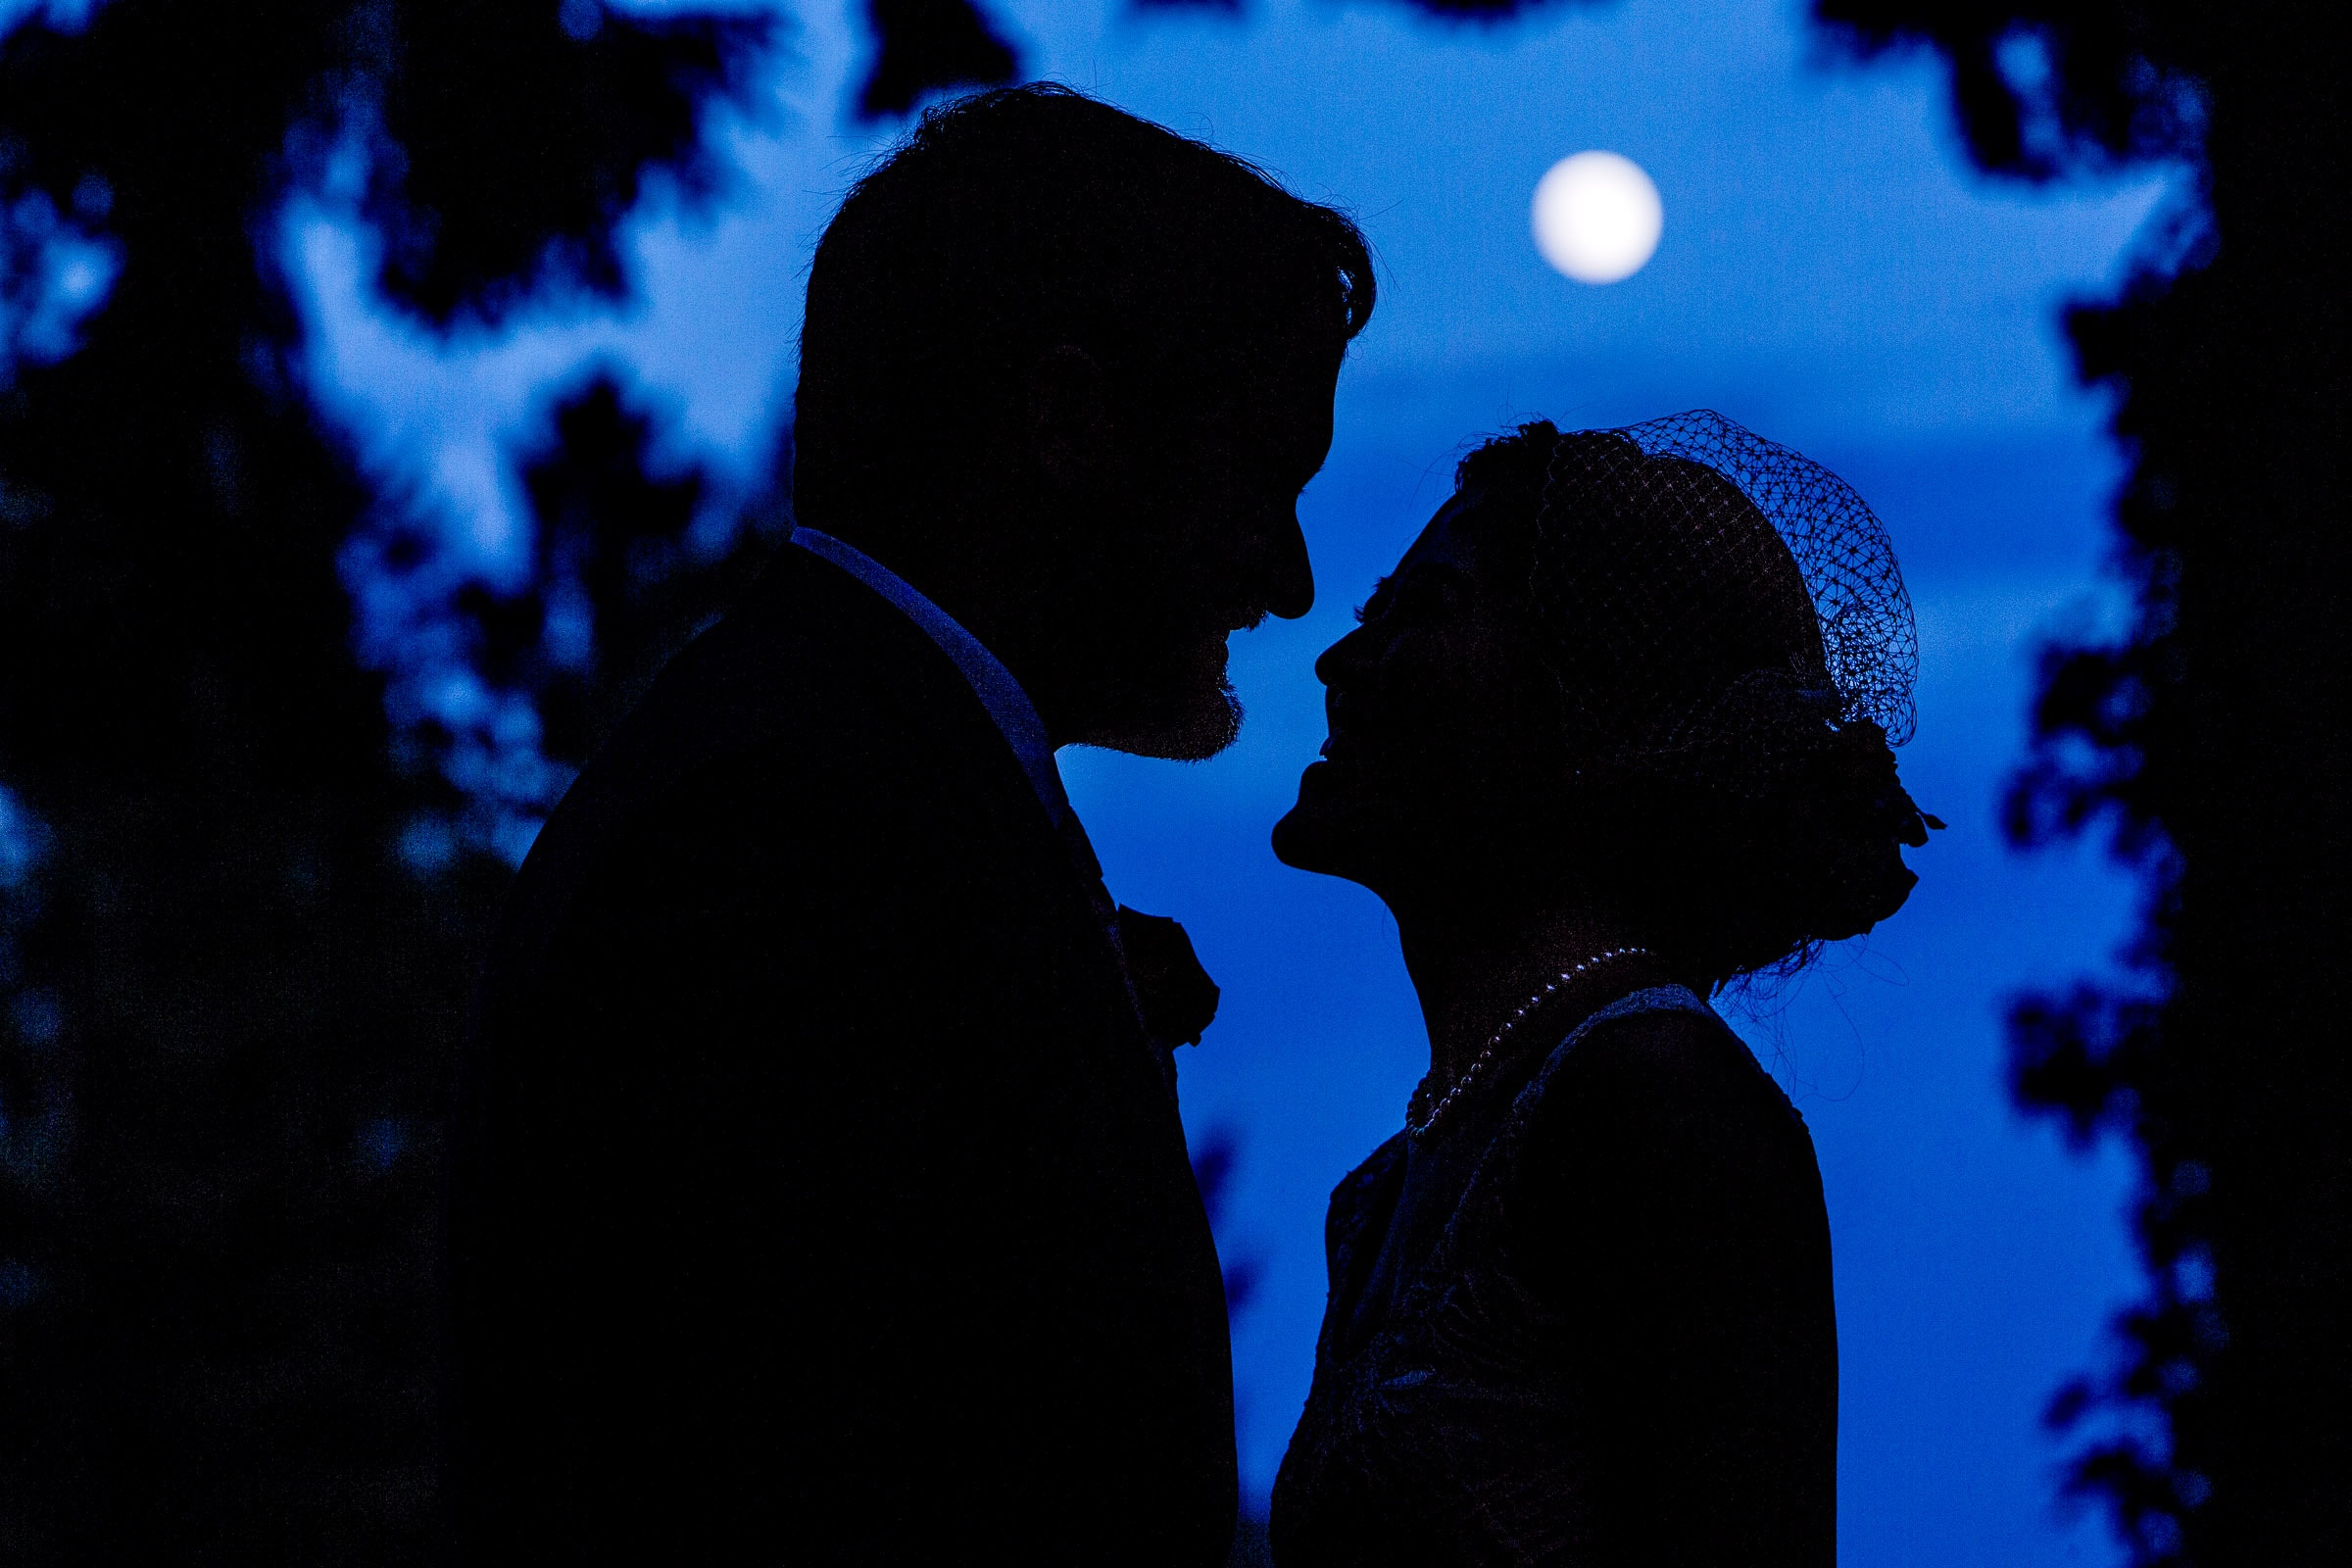 Bride and Groom moon light portrait during a private Seattle elopement ceremony